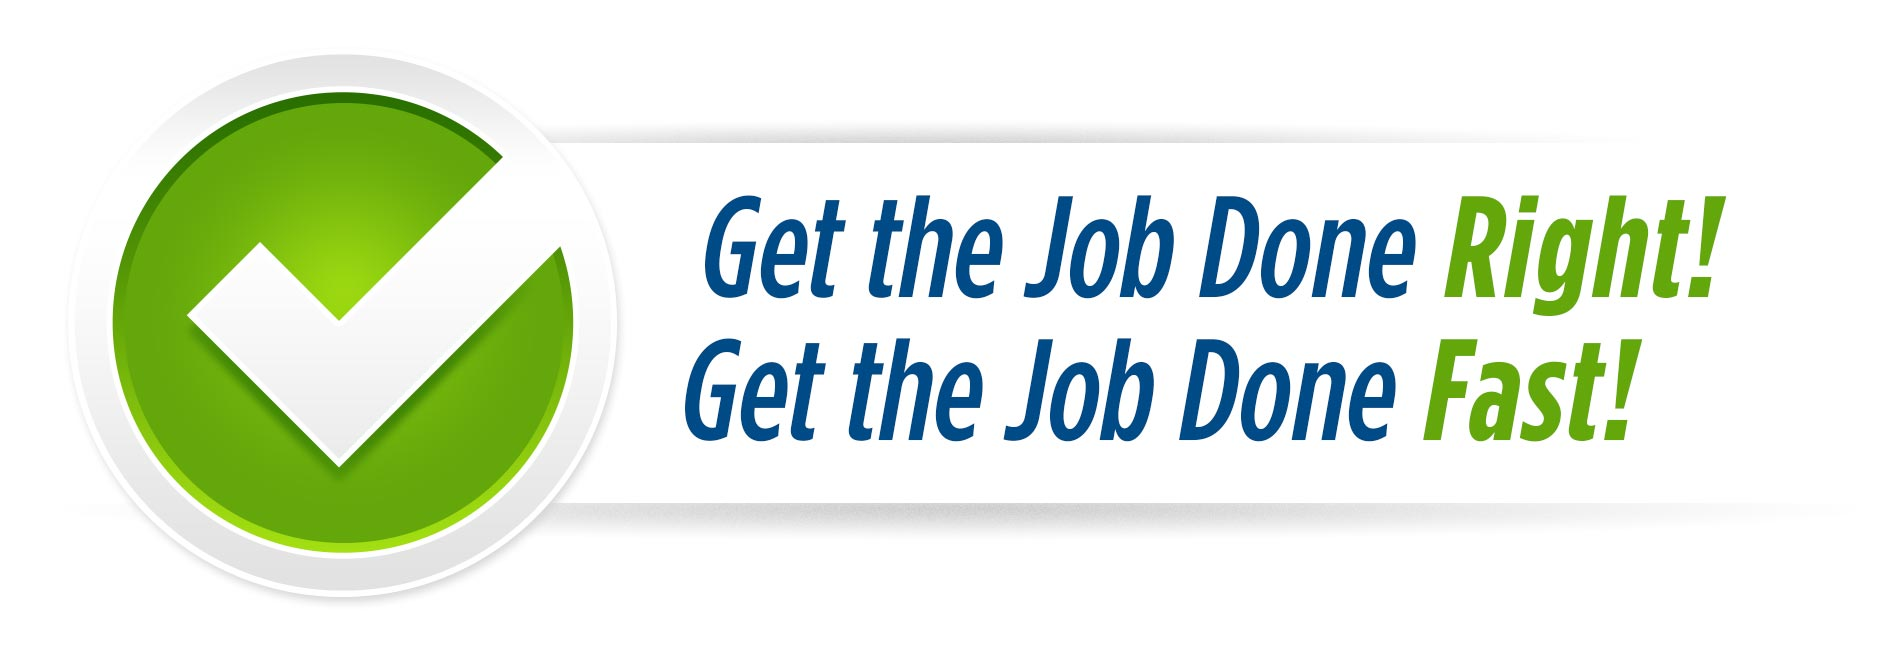 Get the Job Done Right! Get the Job Done Fast!